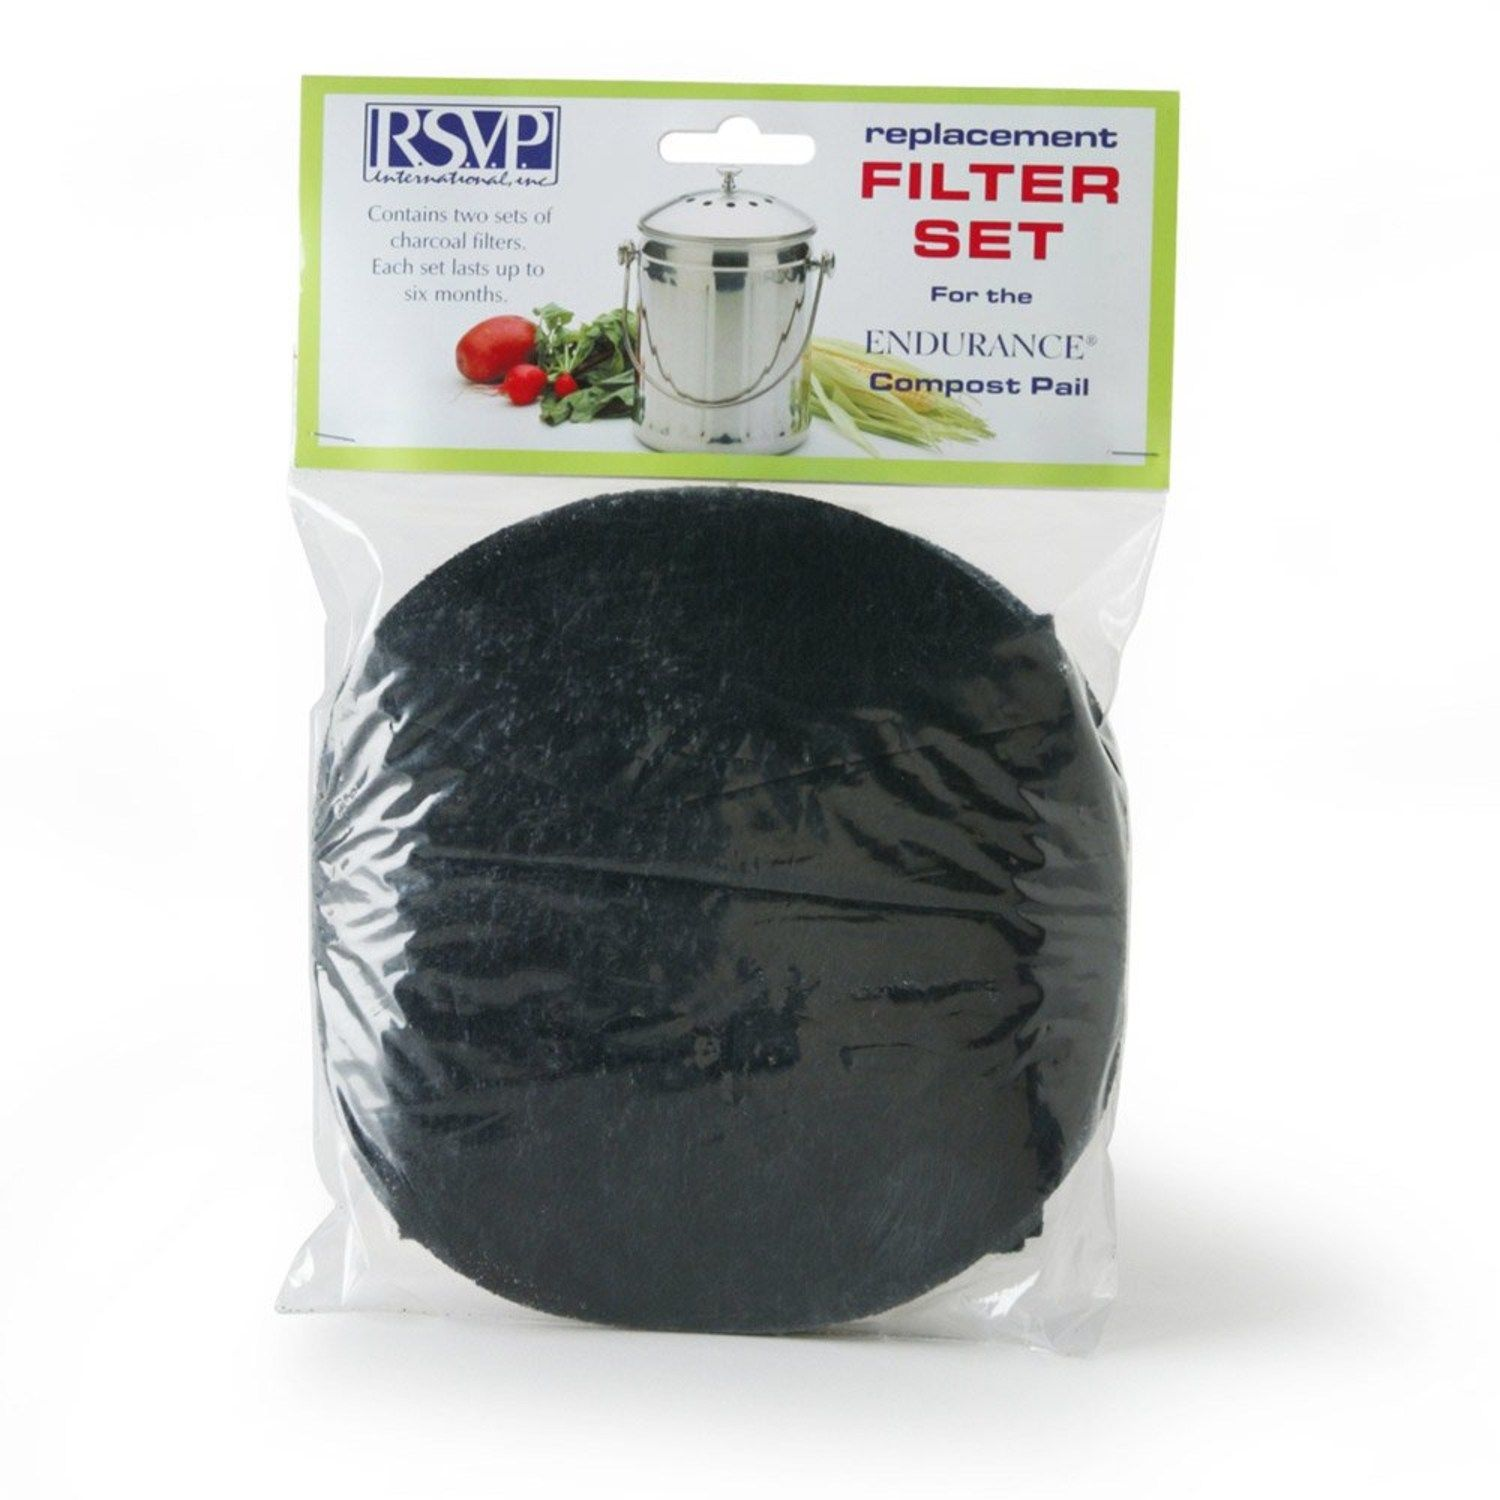 RSVP 2 Replacement Filters Jumbo Compost Pail Keeper Bucket (Pail-Xl) FLTR-XL by RSVP